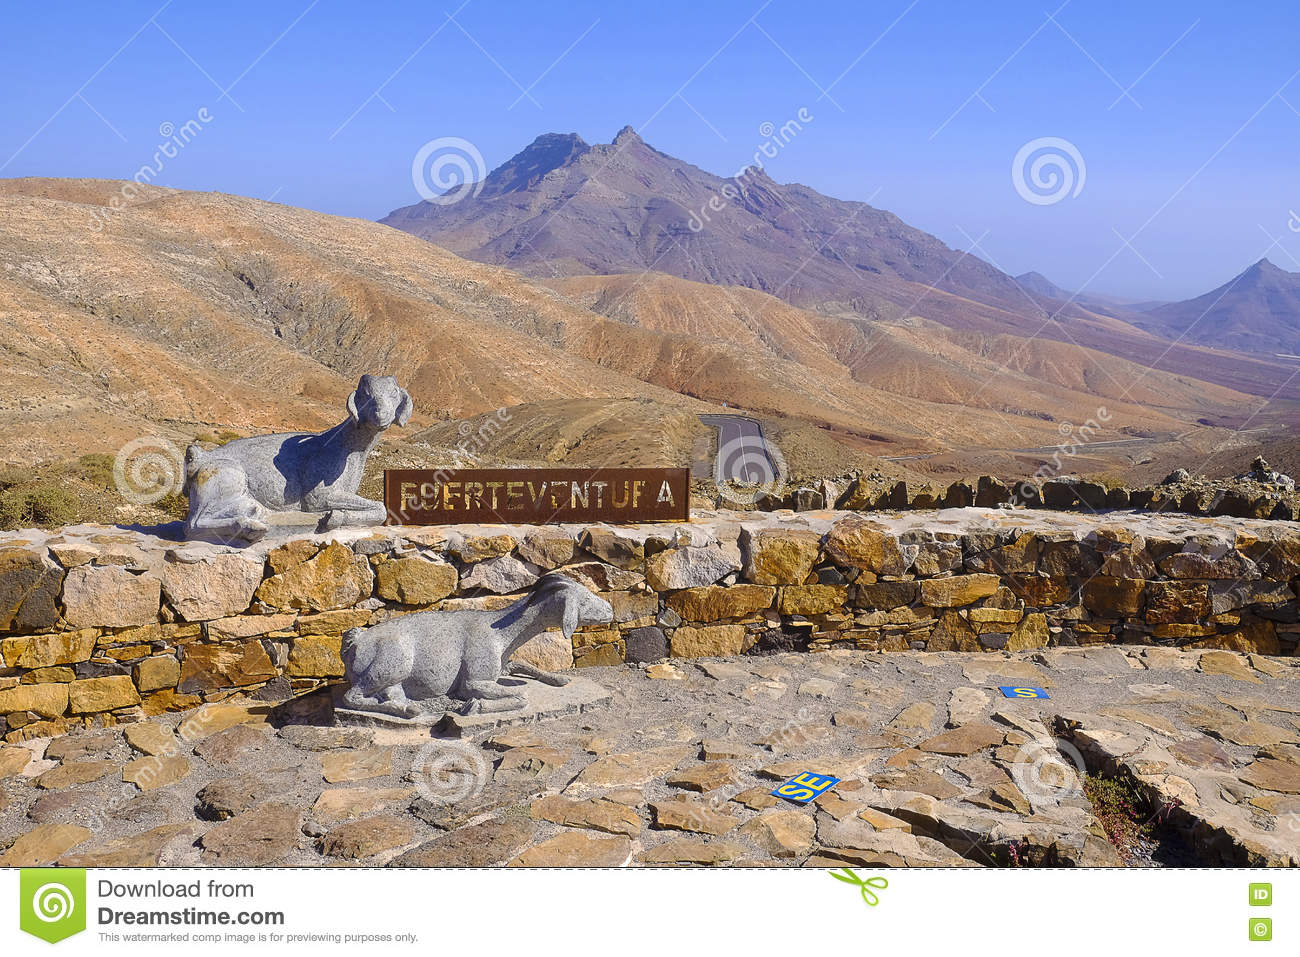 Monuments of two goats and a landmark. Fuerteventura, Spain - 25.06.2016.